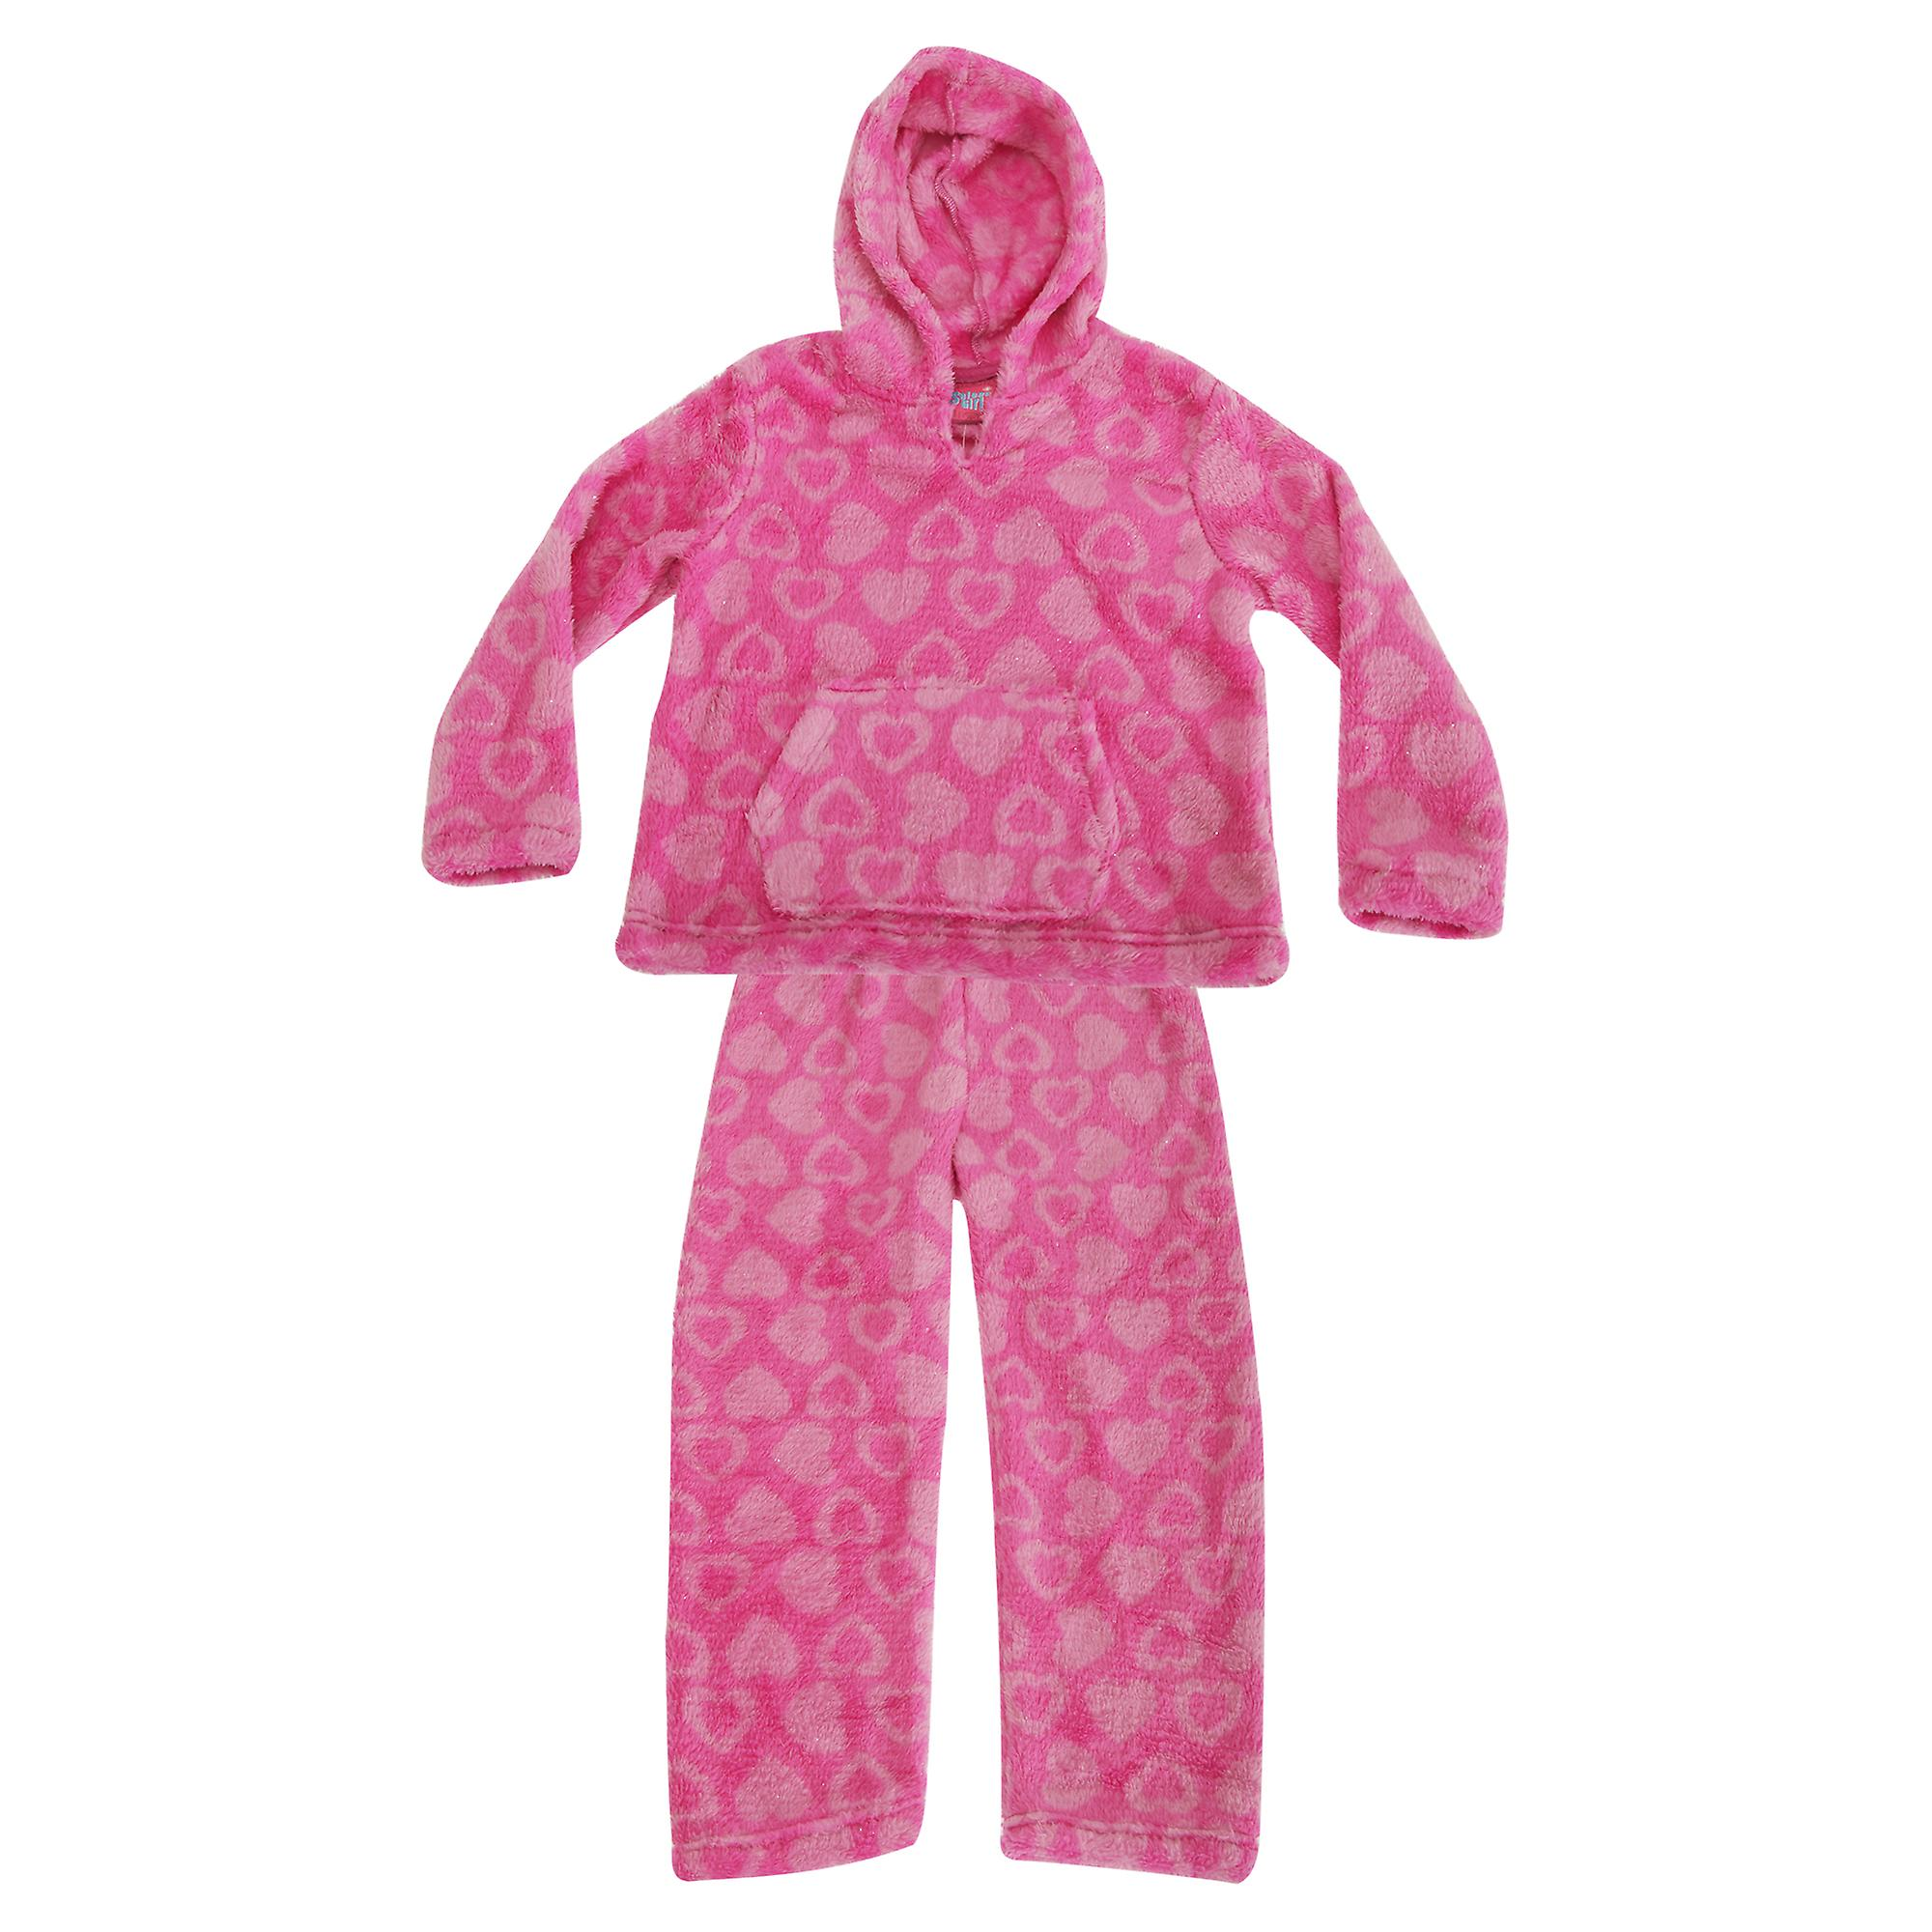 Selena Girl Childrens Girls Glittery Heart Print Supersoft Fleece Pyjama Hoodie And Bottoms Set